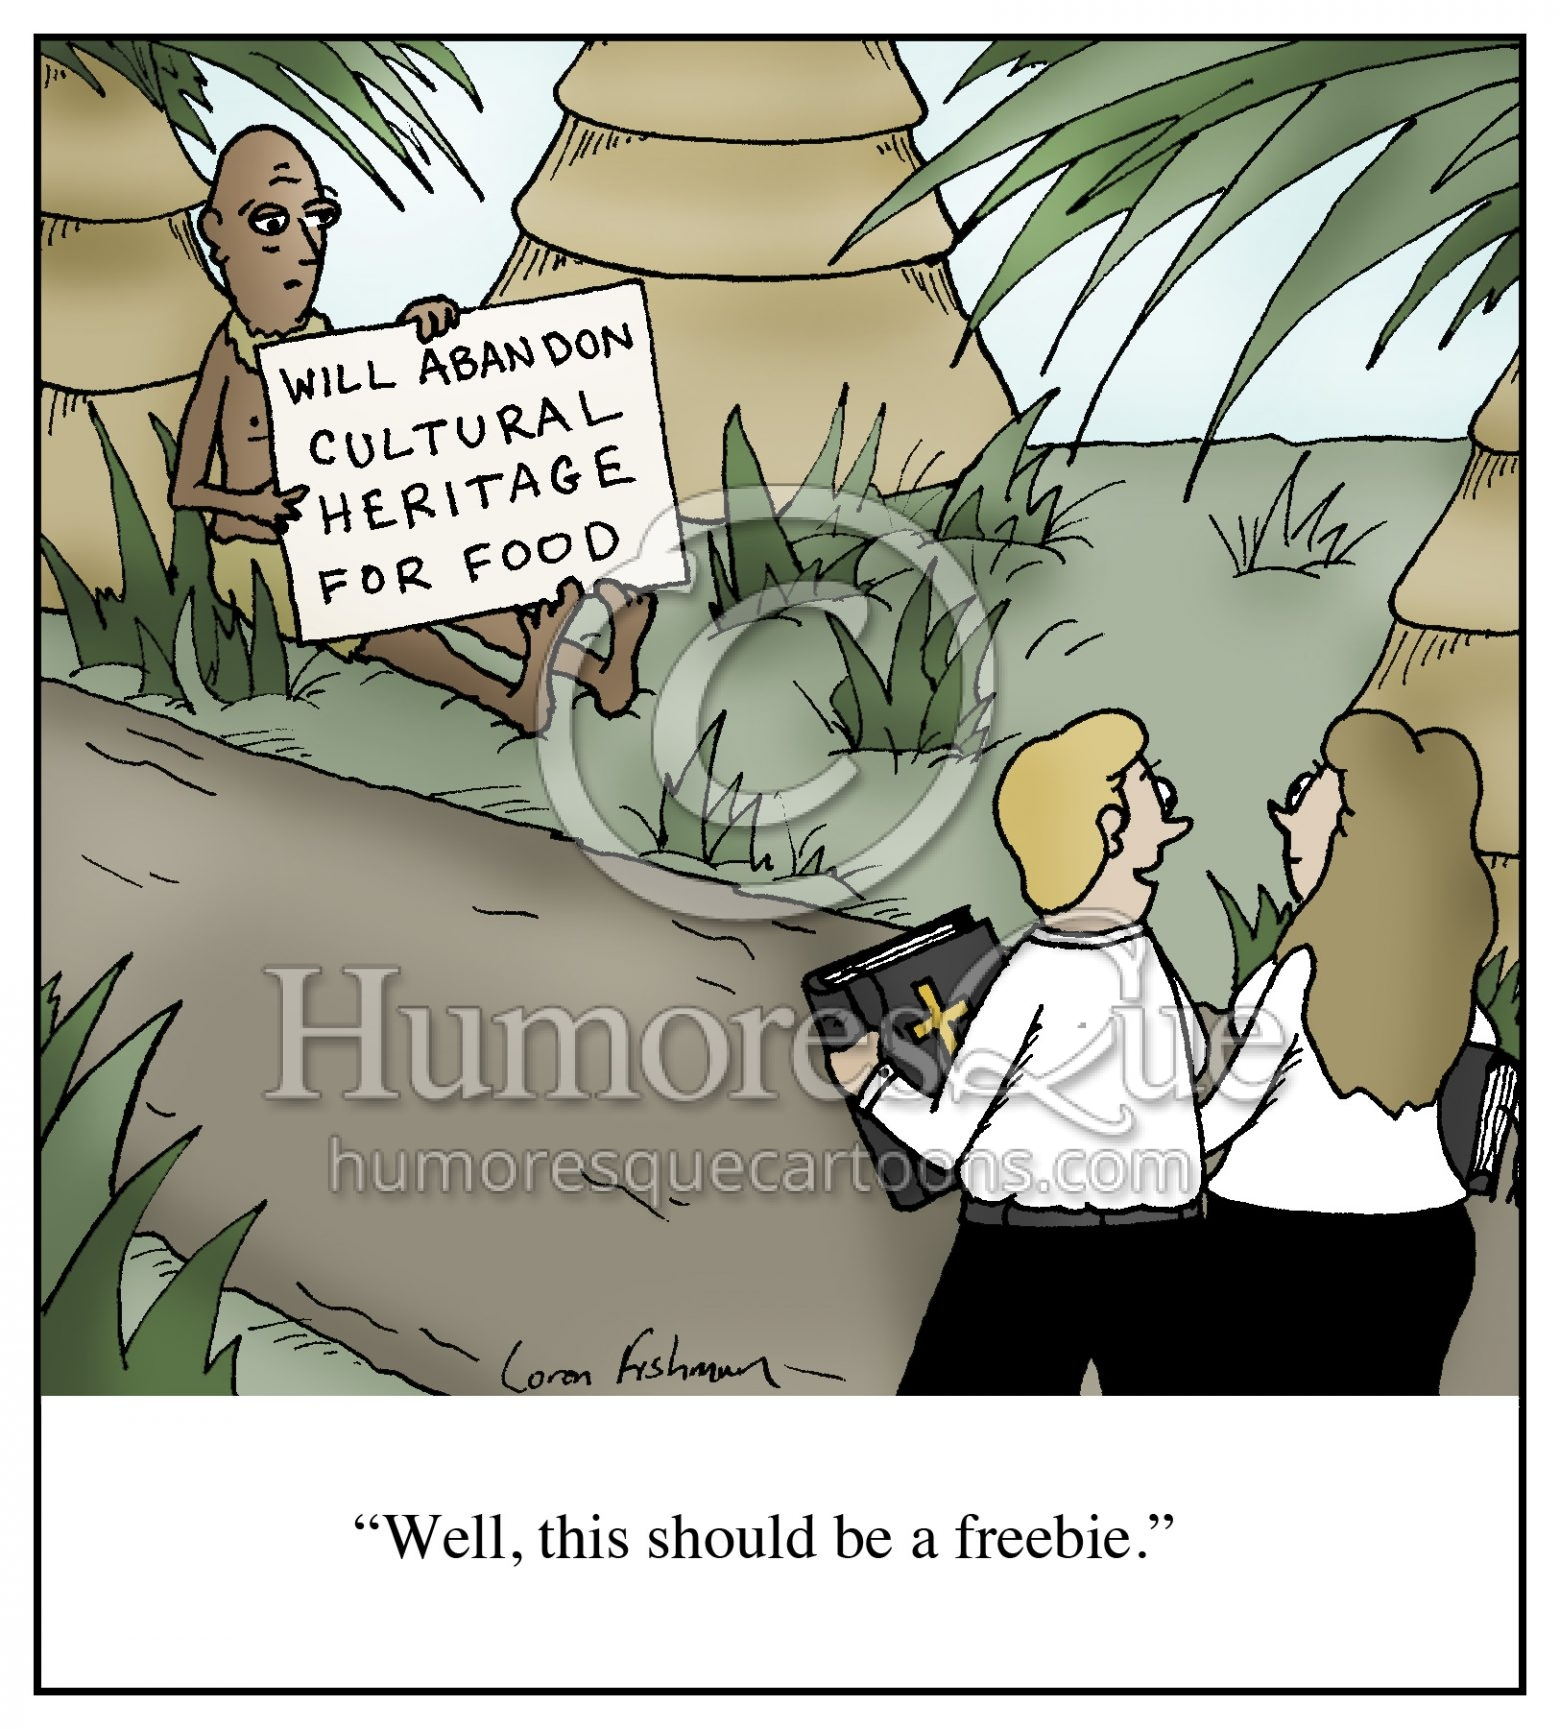 missionaries cultural heritage mormons cartoon